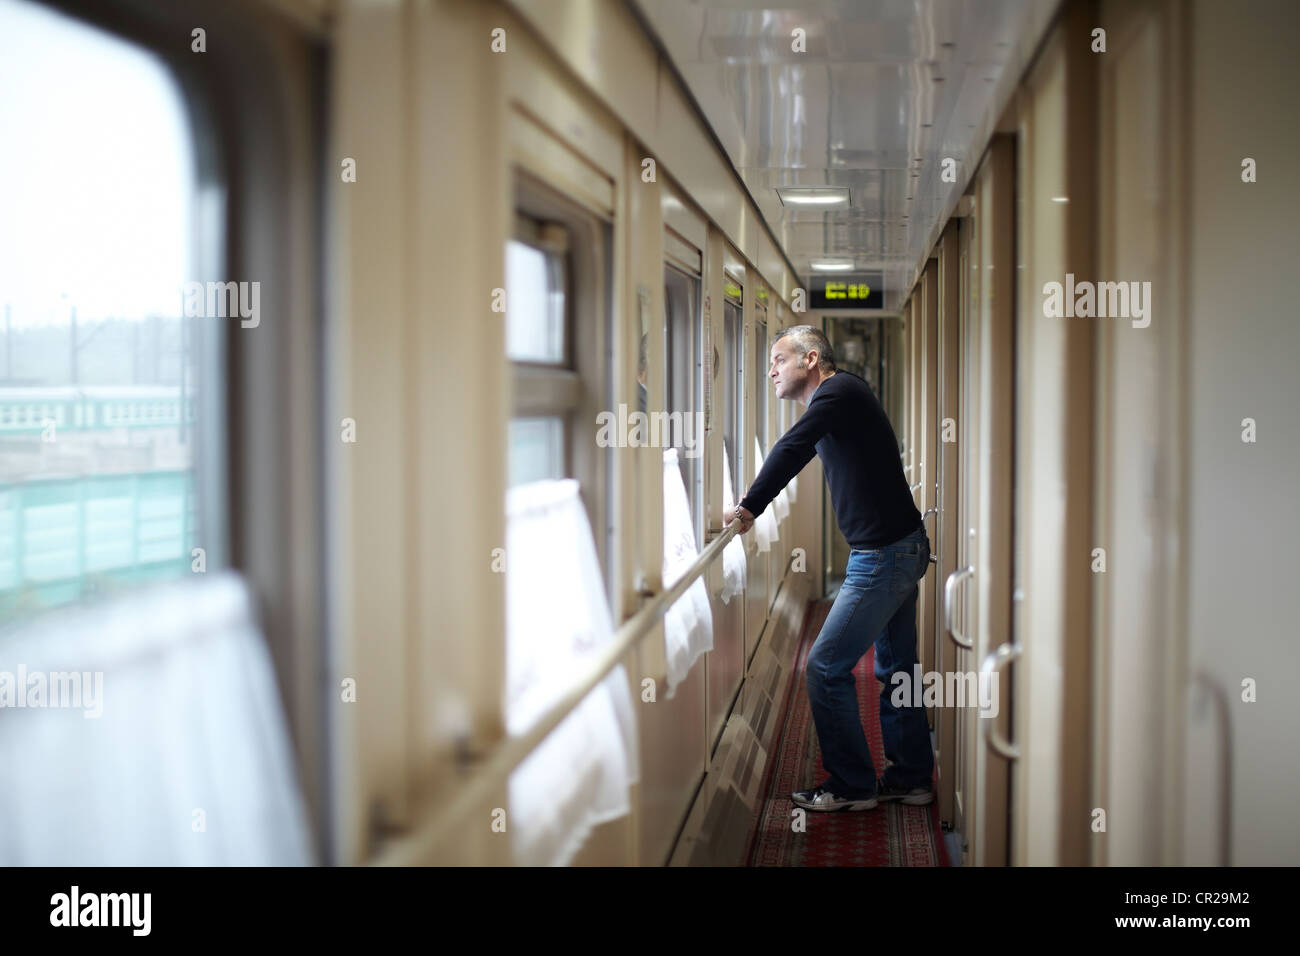 Adult man looking out of window on train - Stock Image